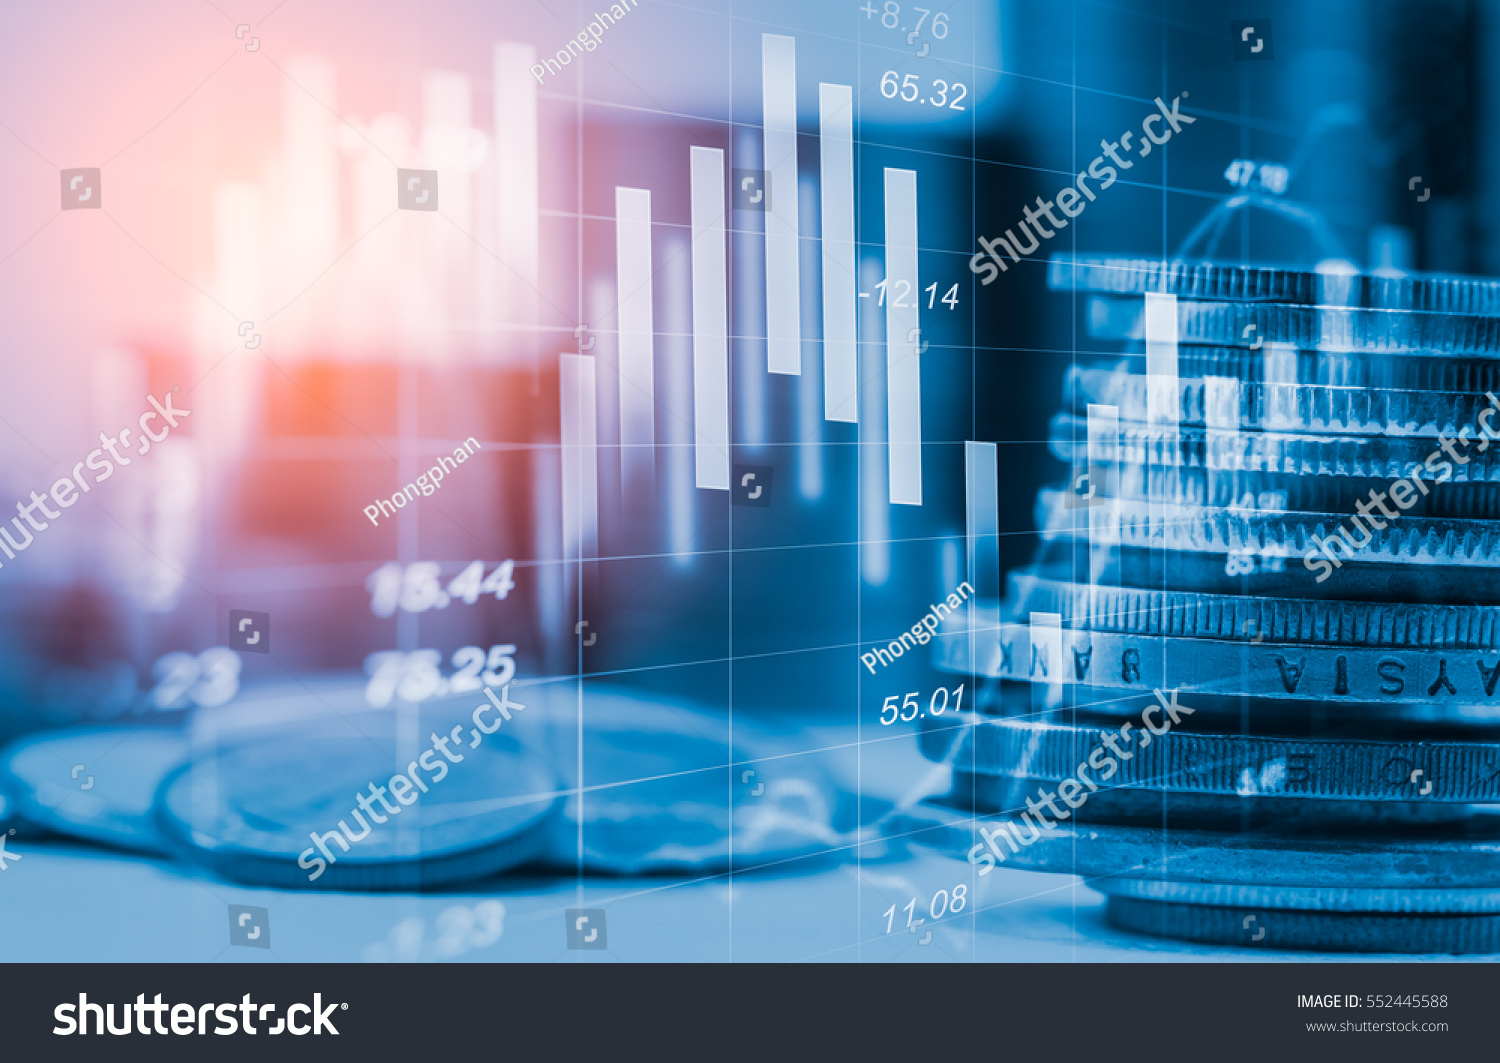 Stock market or forex trading graph and candlestick chart suitable for financial investment concept. Economy trends background for business idea and all art work design. Abstract finance background.   #552445588